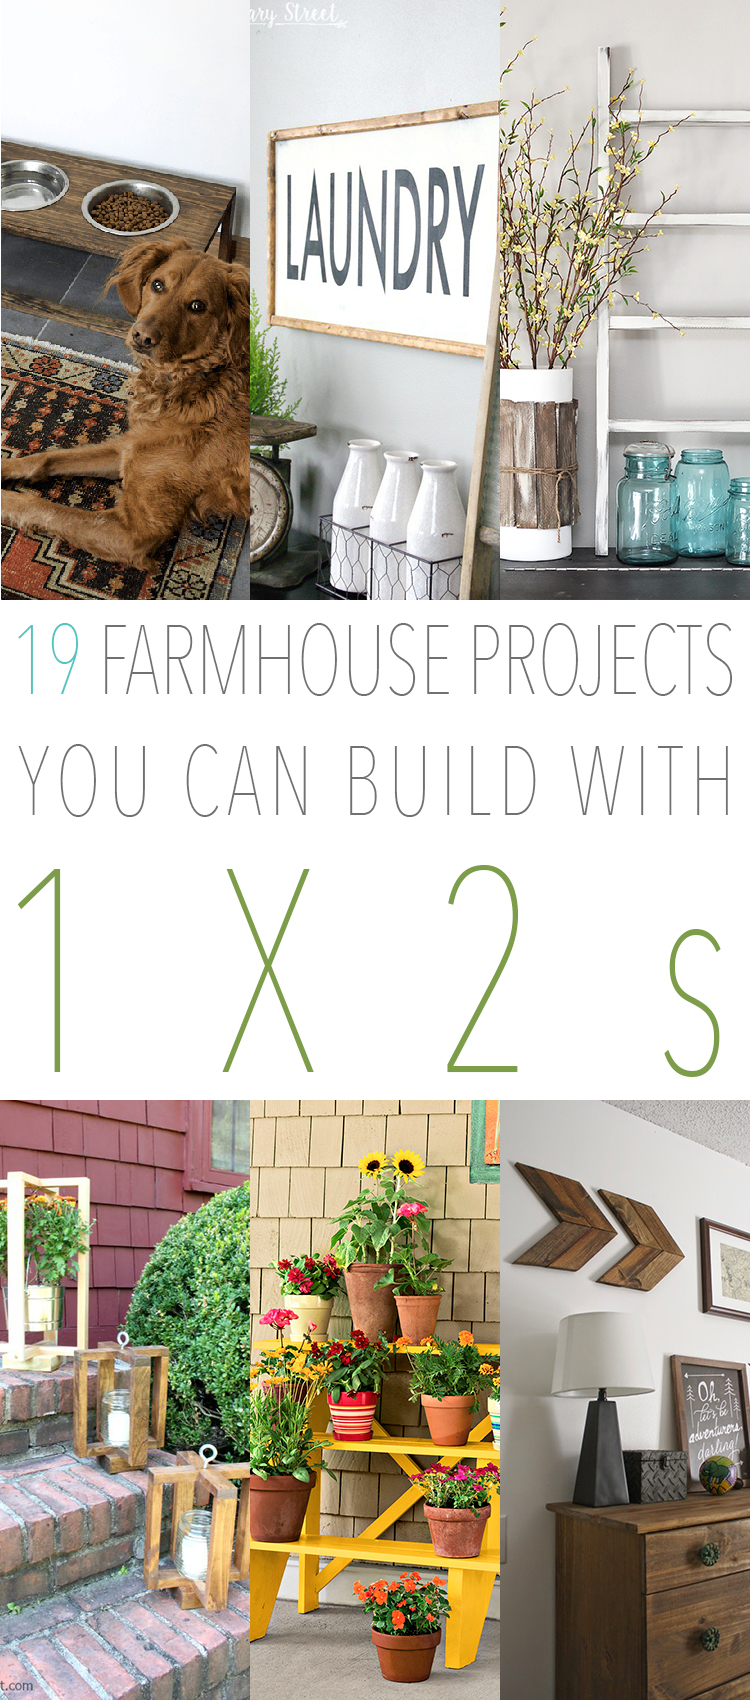 19 Farmhouse Projects You Can Build with 1X2's